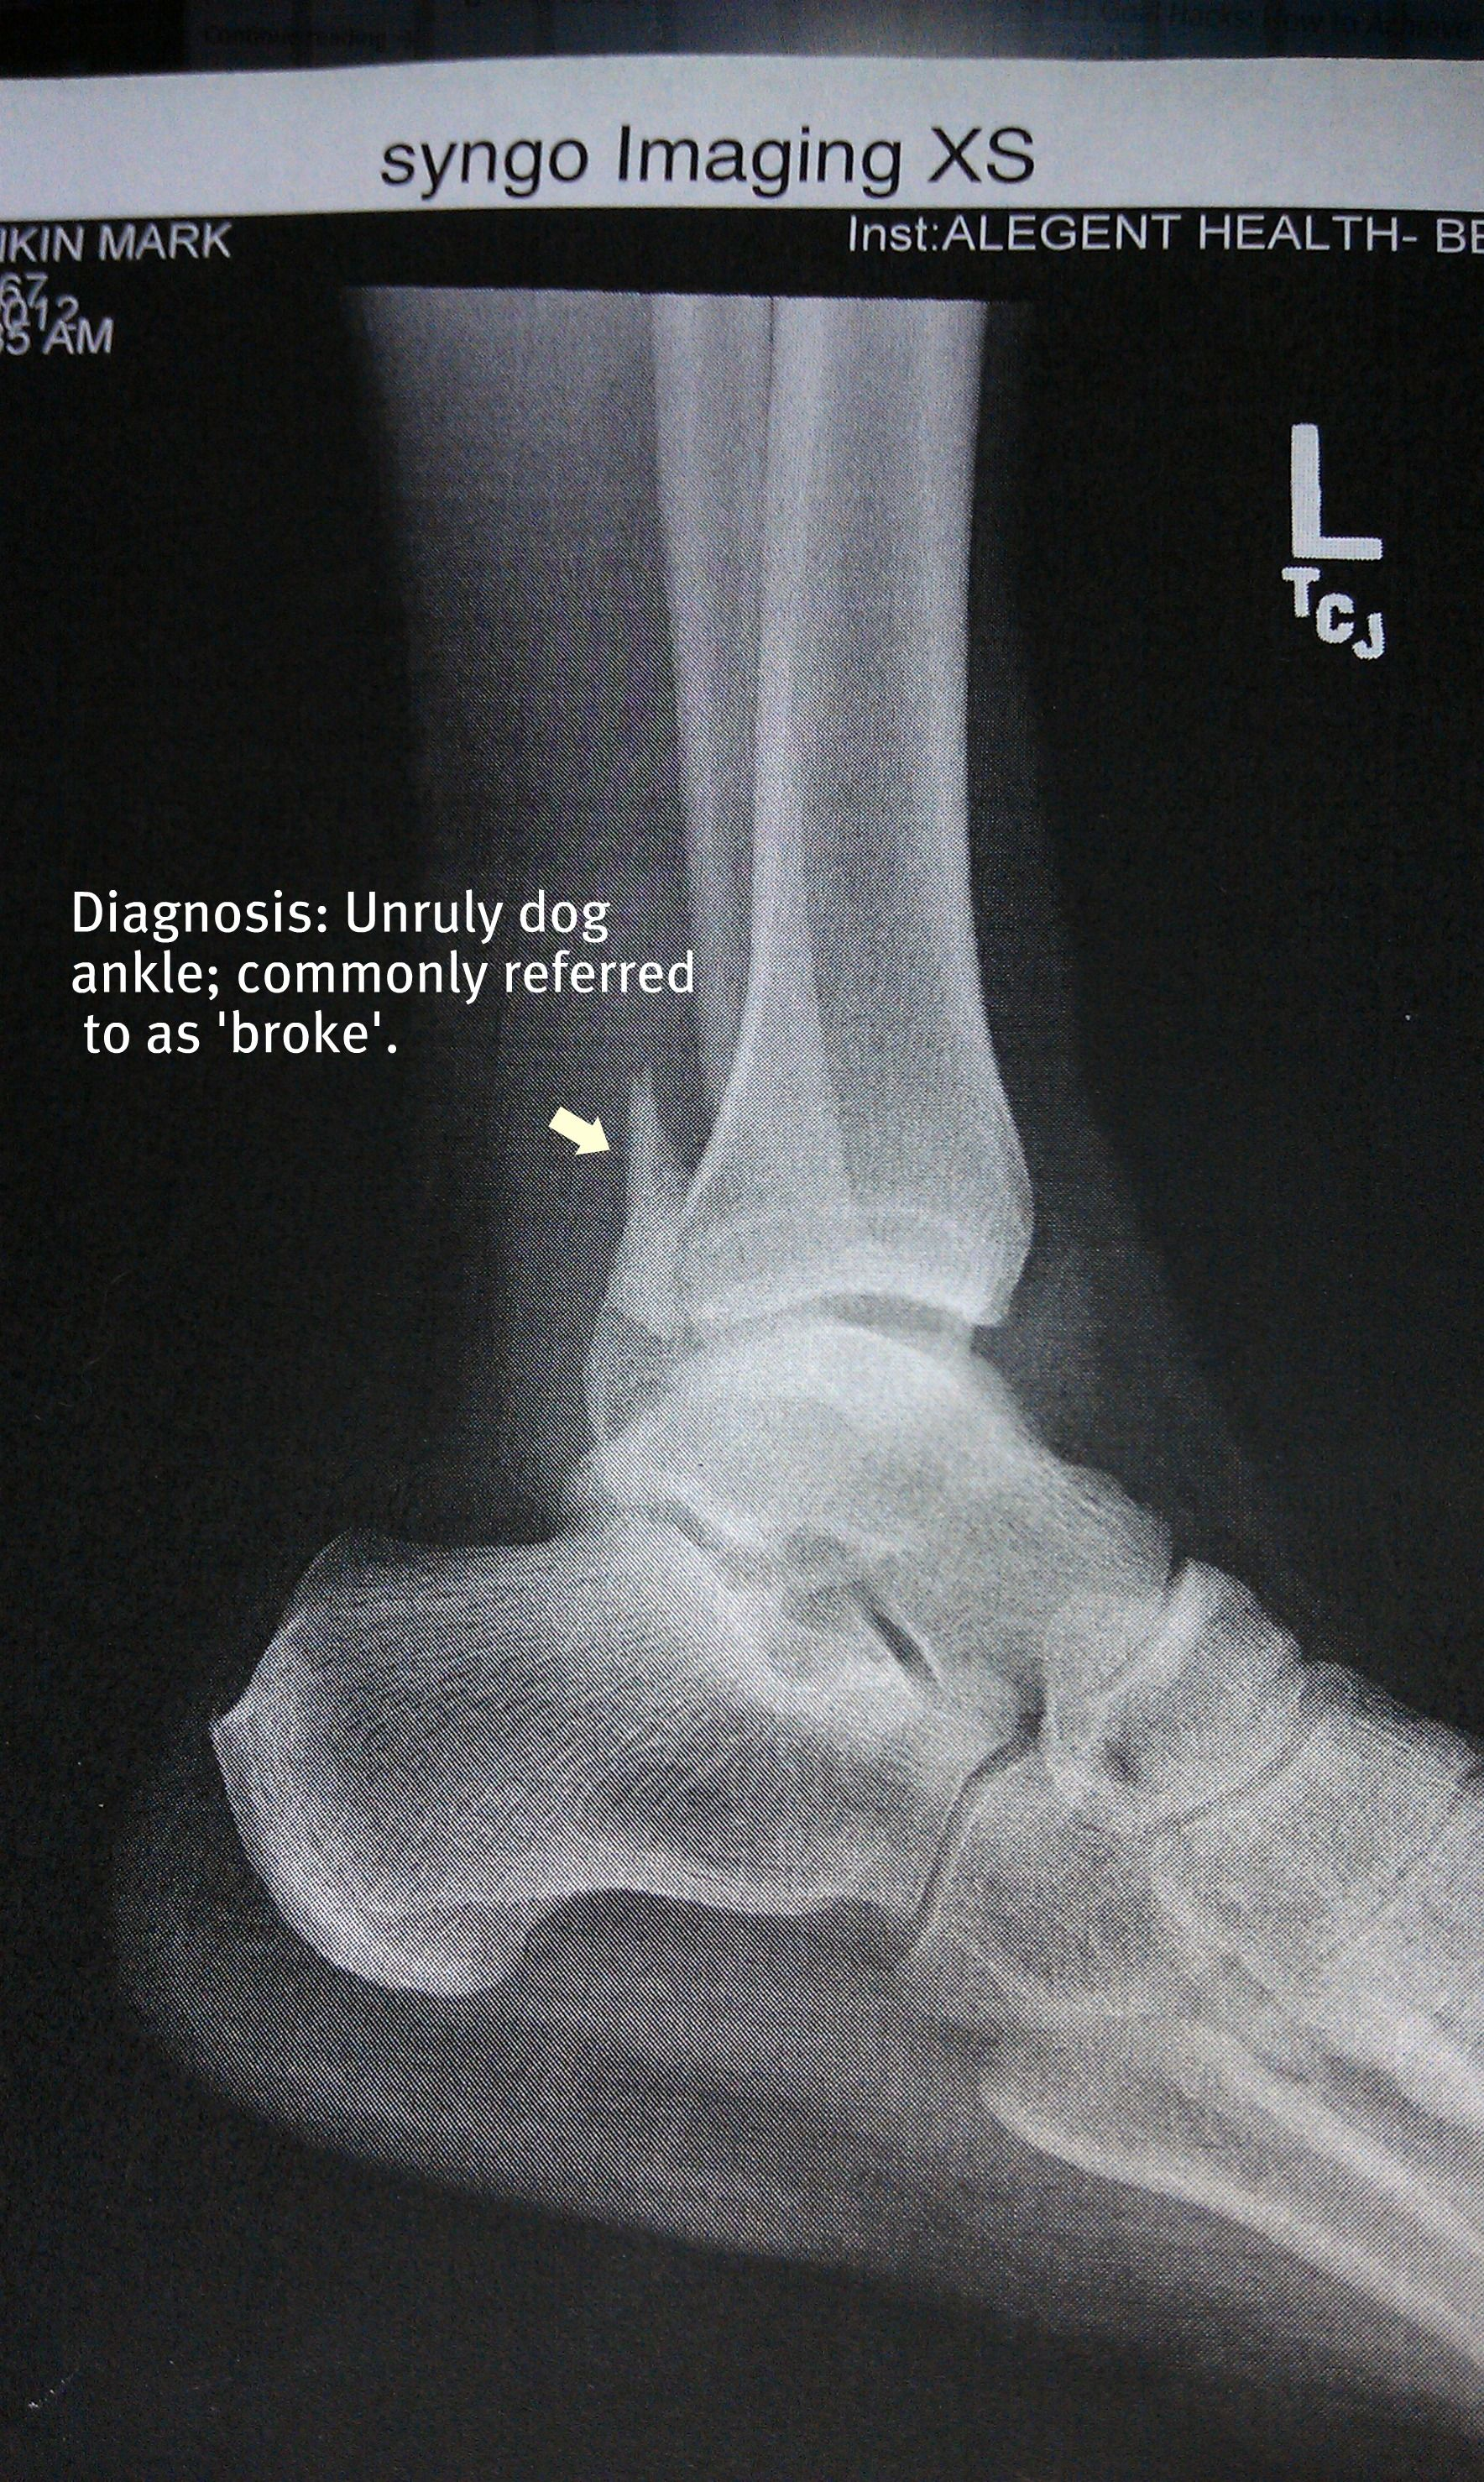 how to tell if your foot/ankle is broken